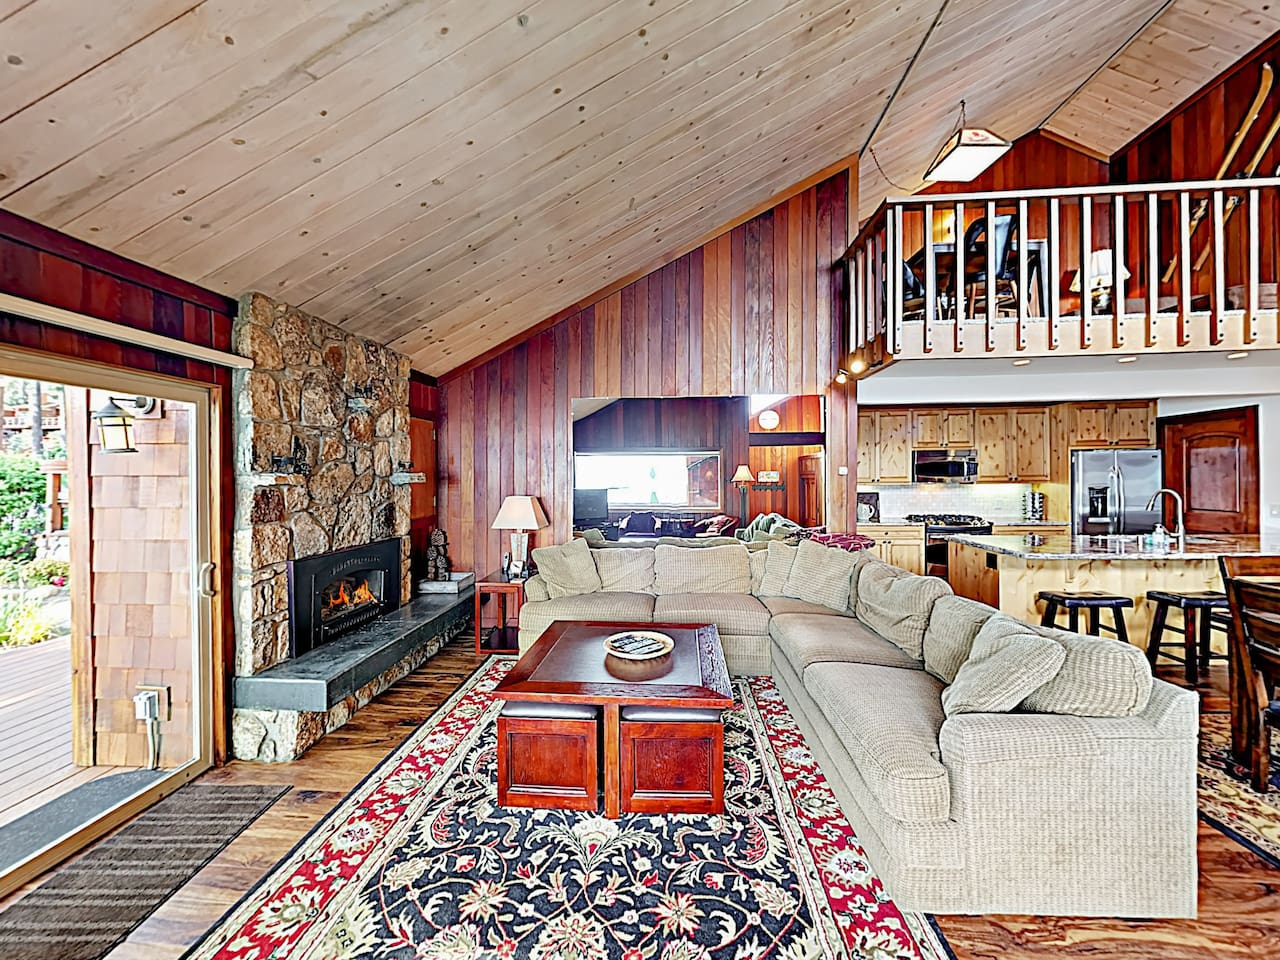 Welcome to Kings Beach! Your rental is professionally managed by TurnKey Vacation Rentals. Warm wood details glow from floor to ceiling throughout the spacious interior.